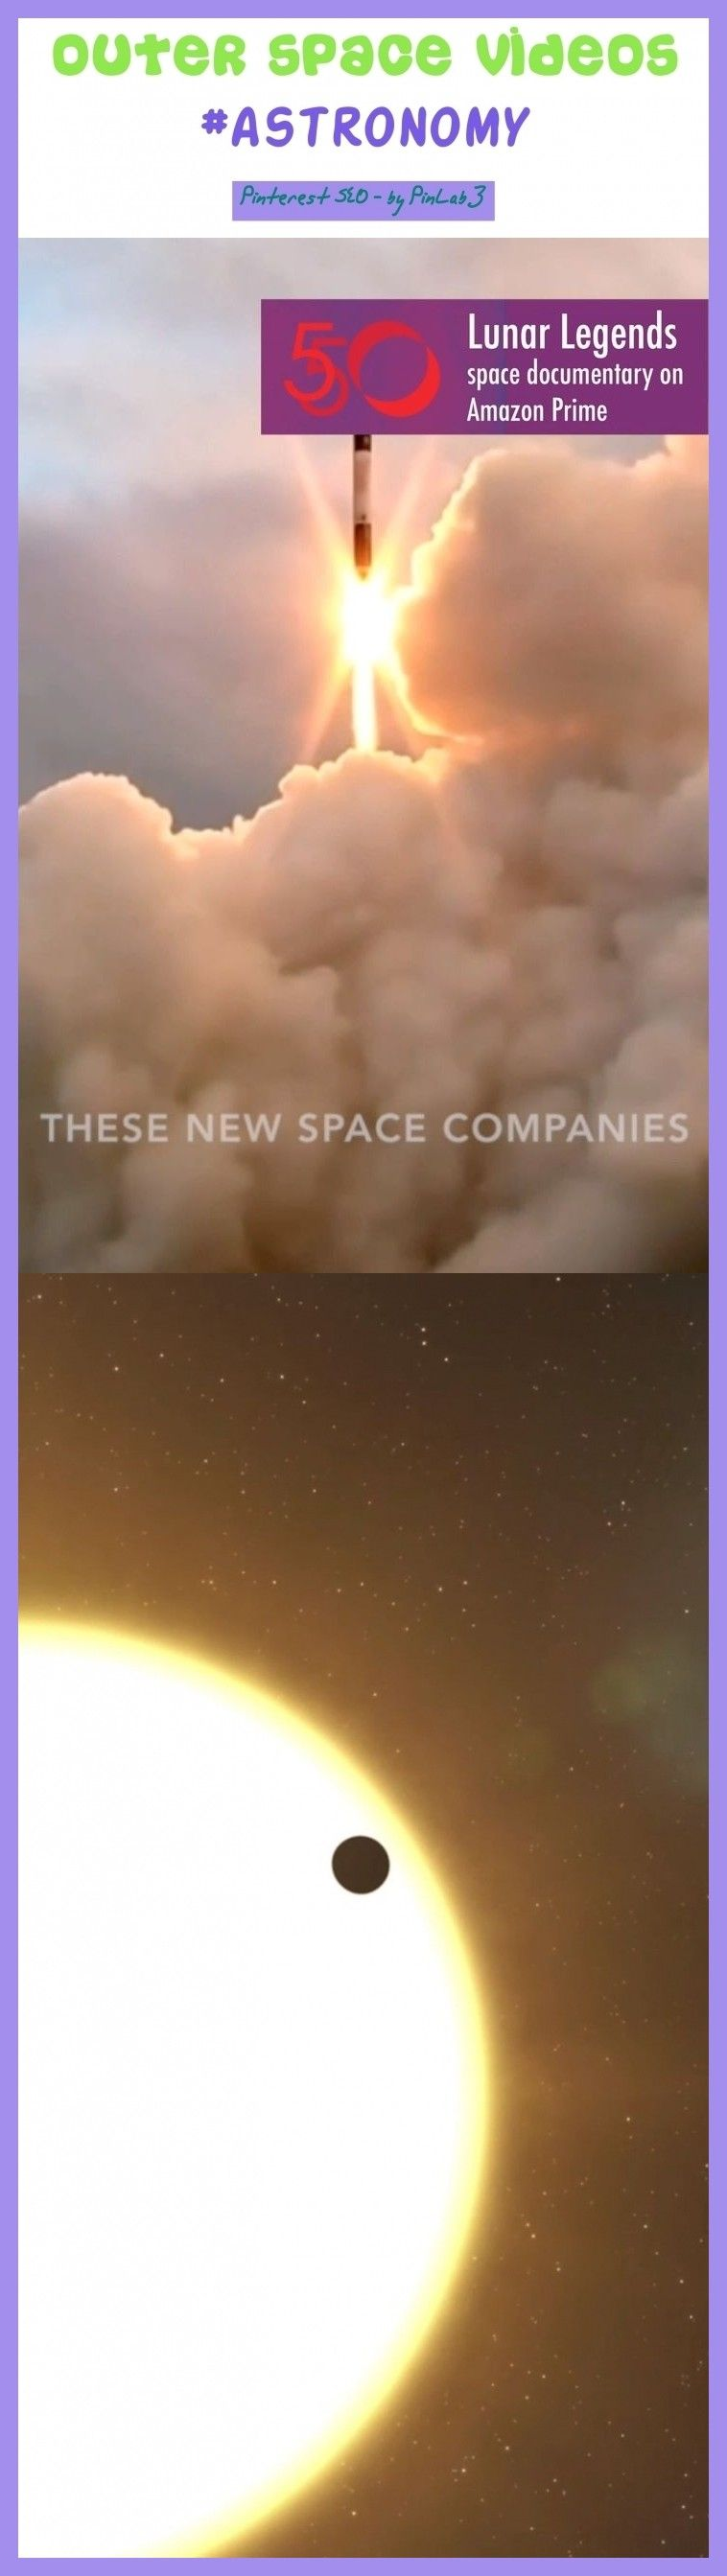 Outer space videos #outer #space #videos #weltraum-videos #vidéos #lespace Weltraum-Videos | vidéos de l'espace | videos del espacio exterior | outer space photography, outer space aesthetic, outer space crafts for kids, outer space theme, outer space party, outer space facts, outer space drawing, outer space illustration, outer space quotes, outer space design, outer space bedroom, outer space planets, outer space preschool, outer space